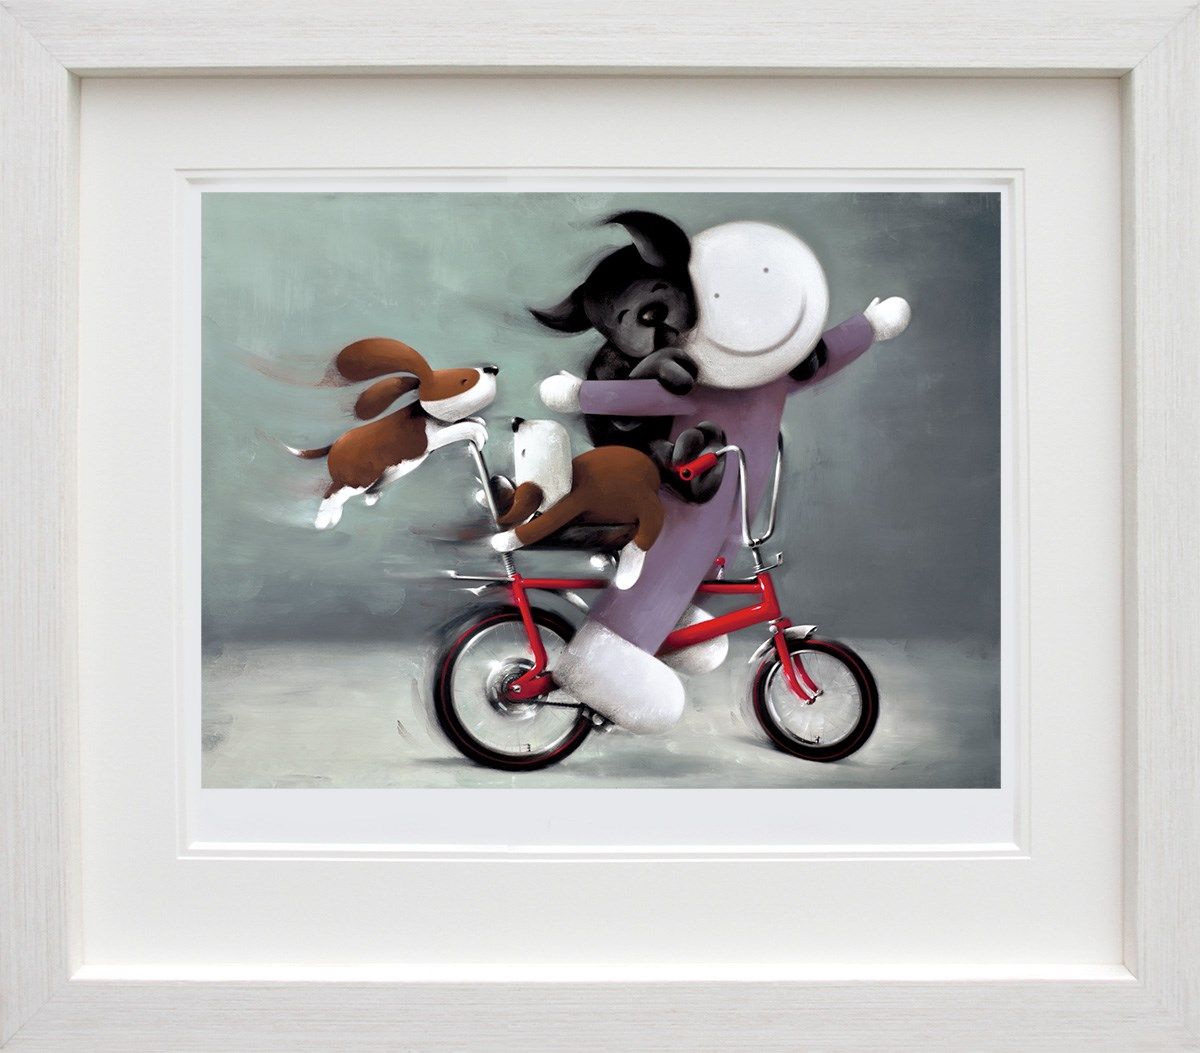 Riding High by Doug Hyde